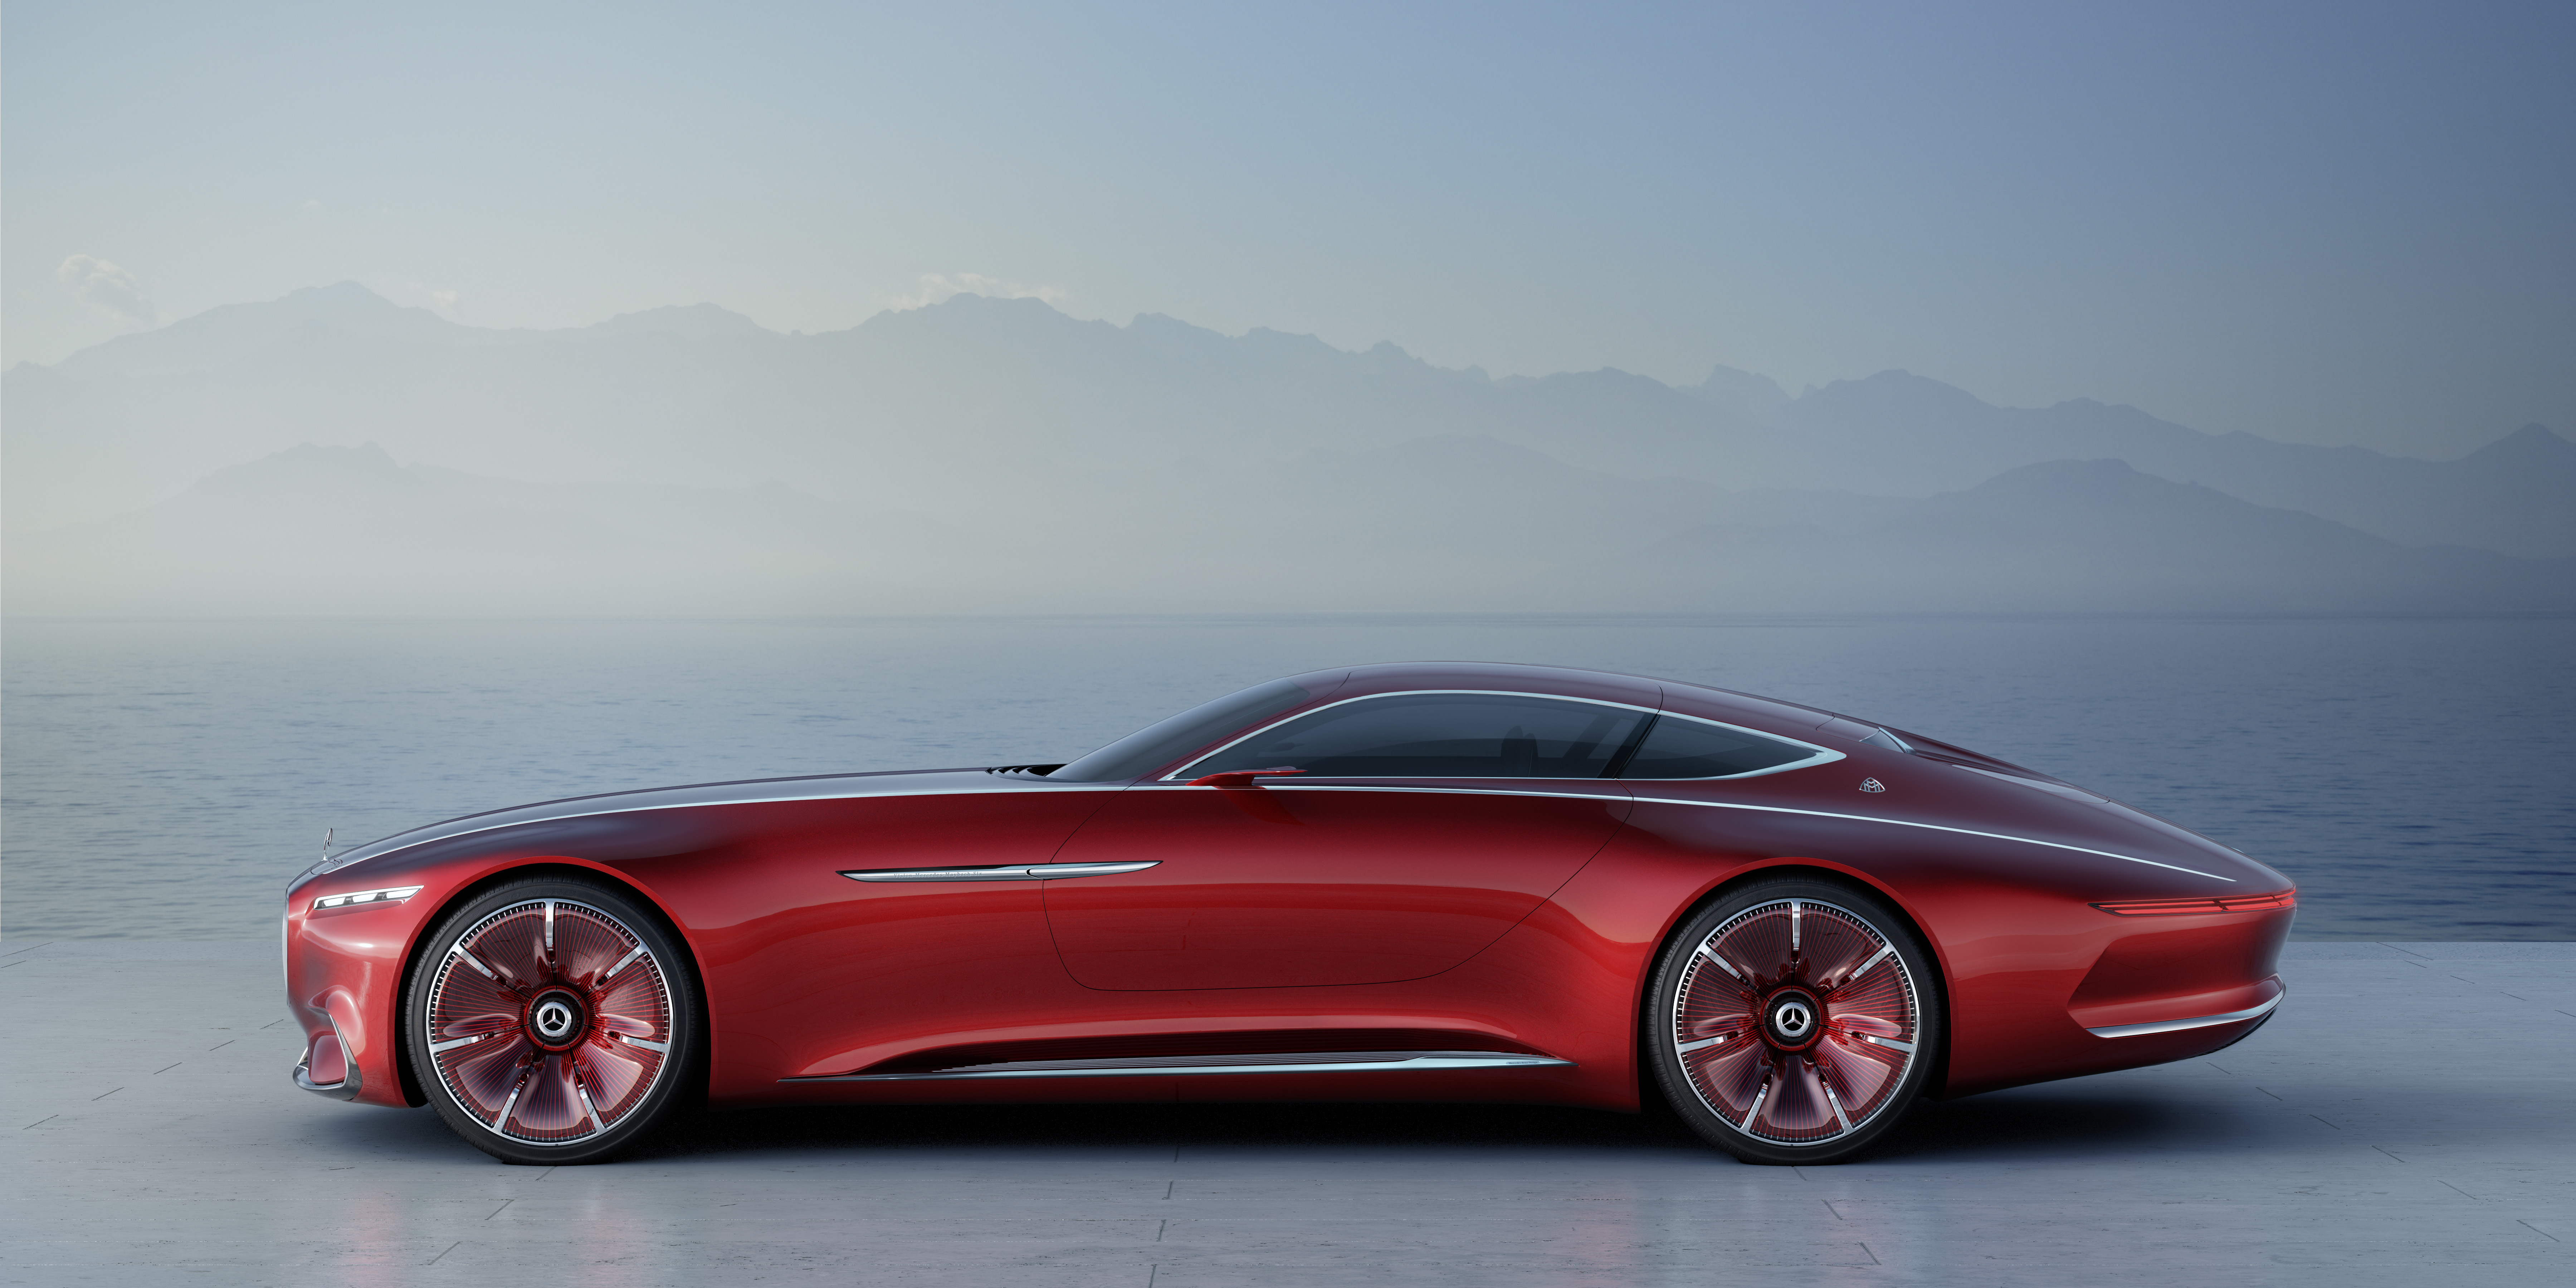 The Mercedes-Maybach 6 is Electric Luxury at its Finest